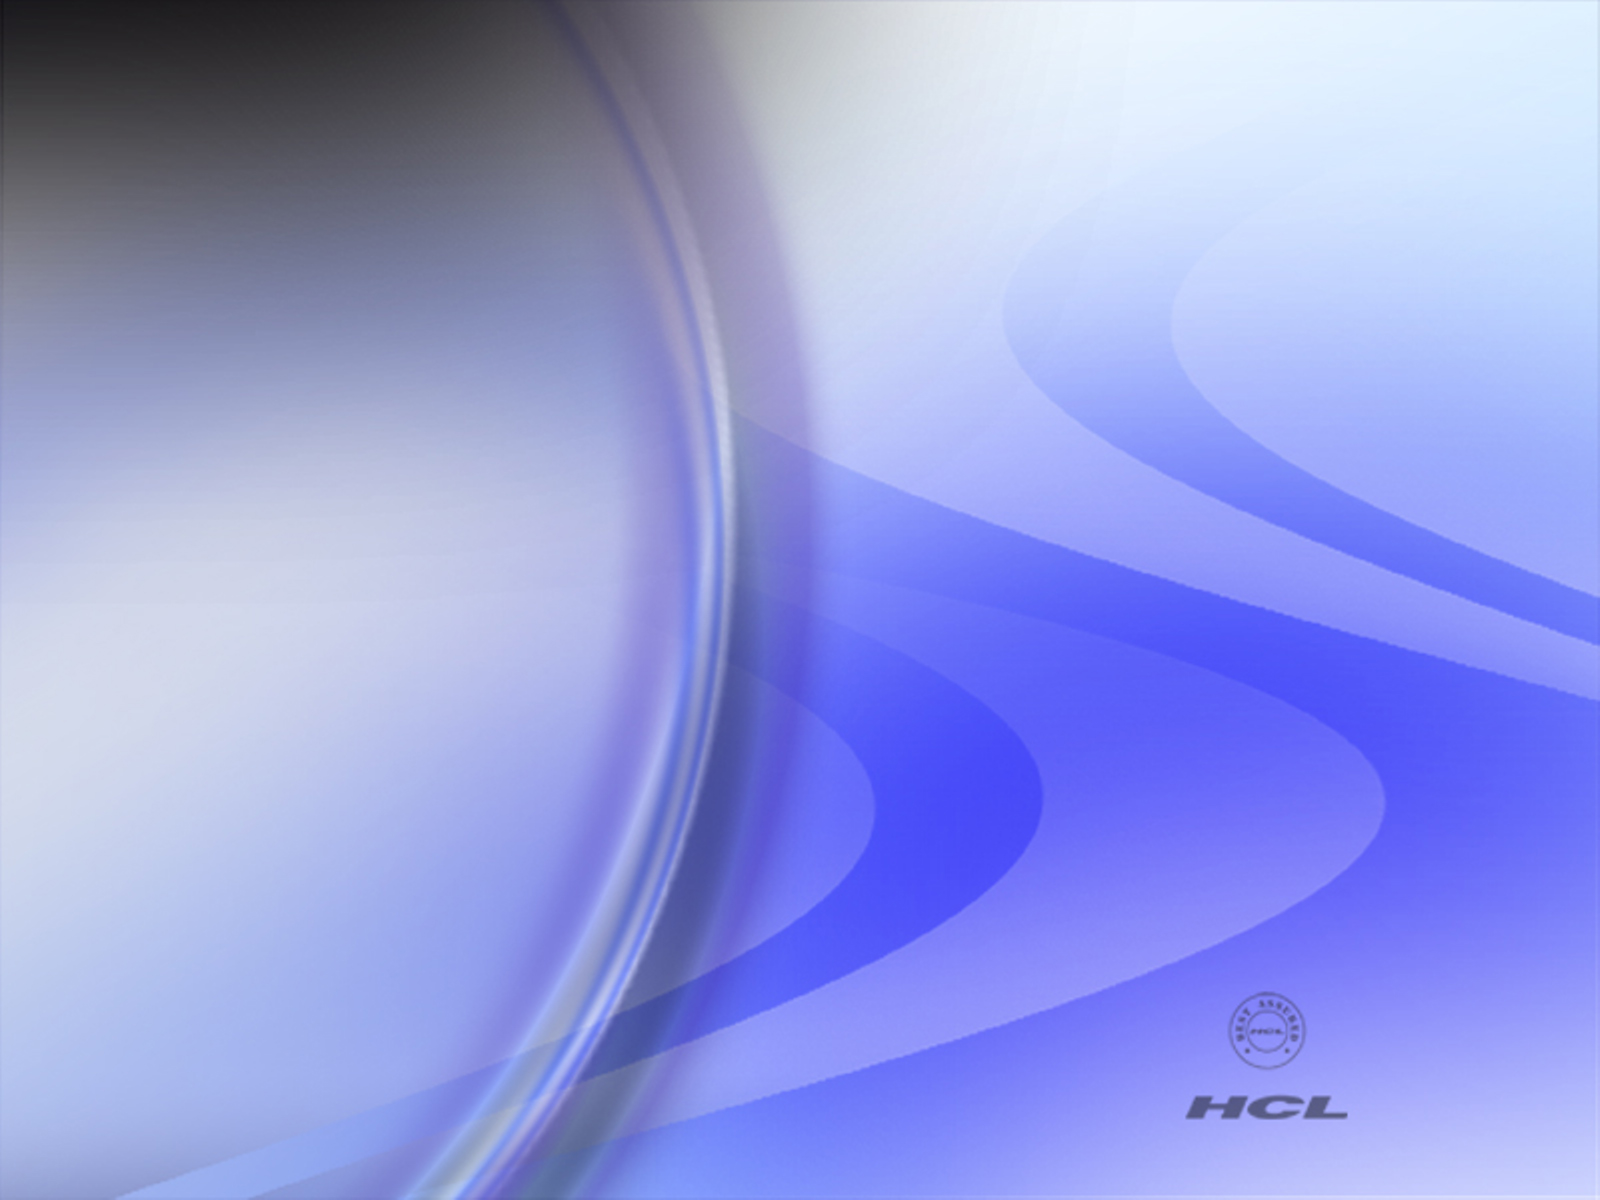 Alienware Iphone Wallpaper Hcl 2 Wallpapers Hcl 2 Stock Photos